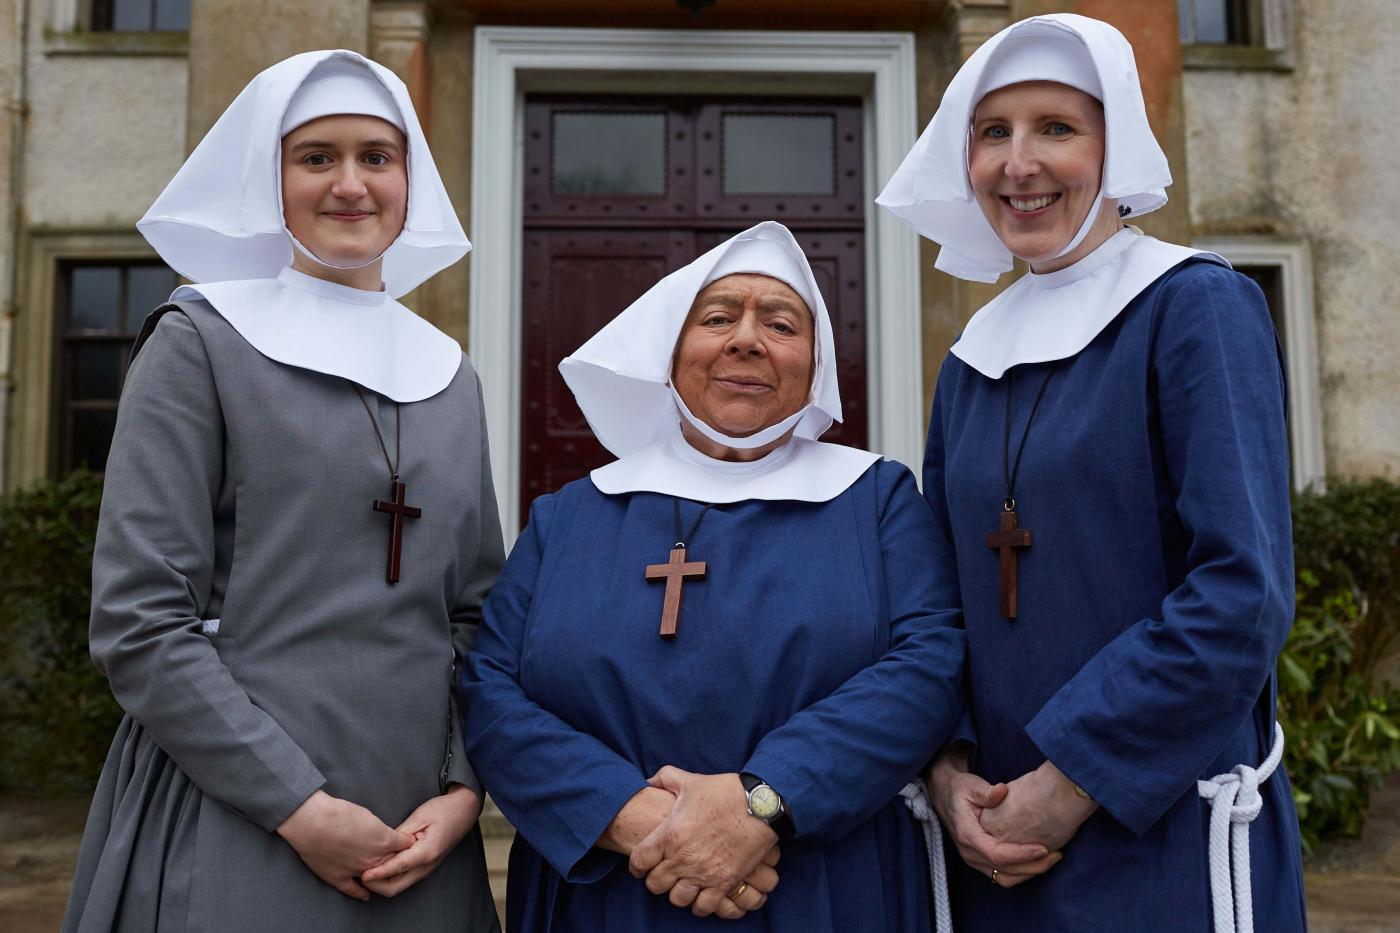 Sister Frances (ELLA BRUCCOLERI), Sister Mildred (MIRIAM MARGOLYES), Sister Hilda (FENELLA Woolgar) in Call the Midwife. Photo: Neal Street Productions